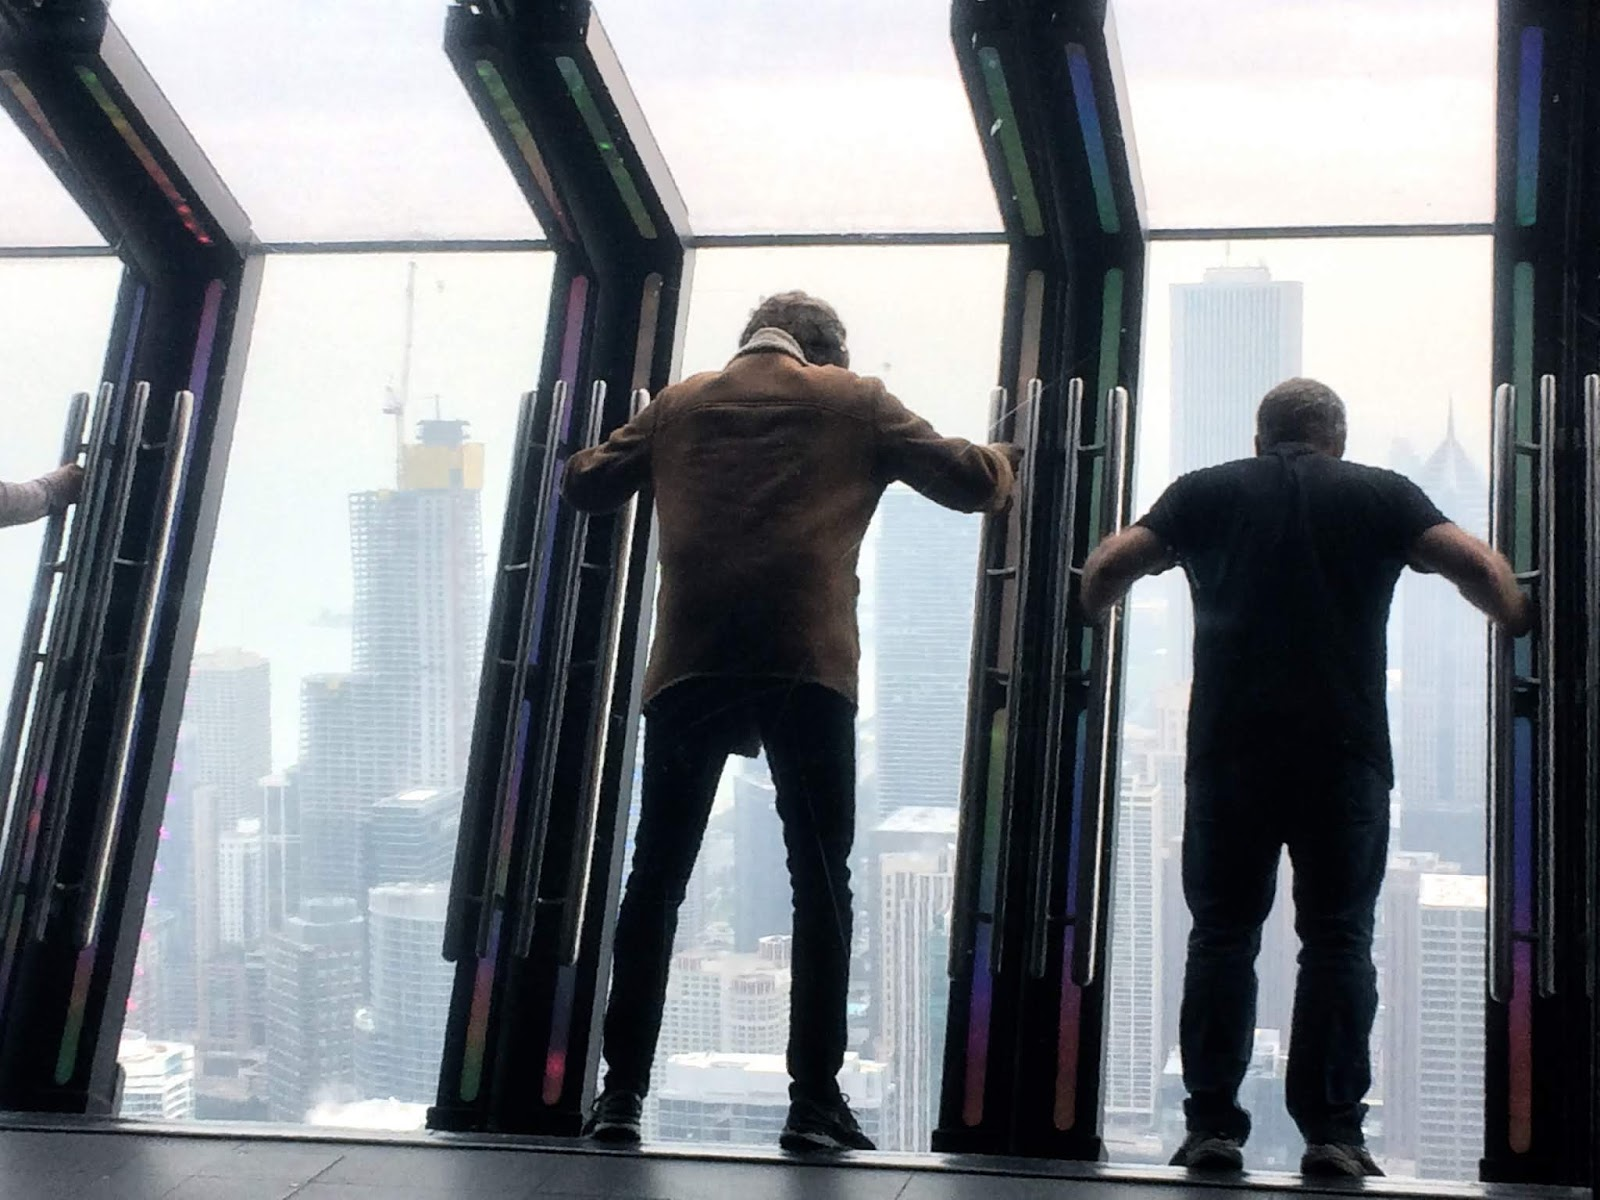 Two people holding on to the window, tilting at 45 degrees in a tower